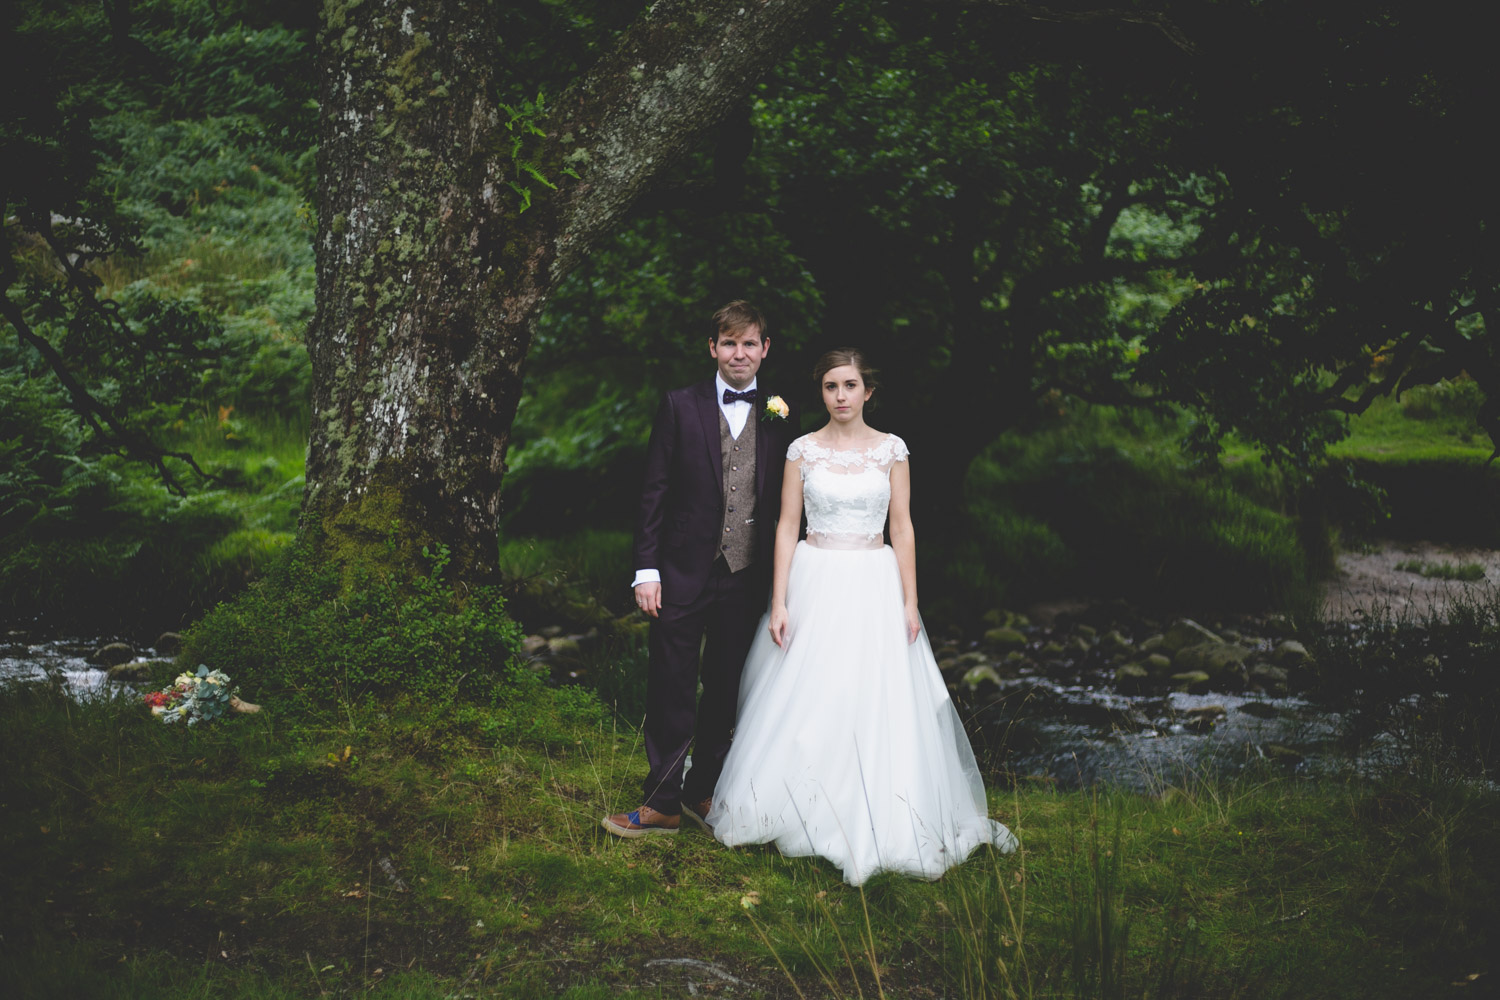 Kippure estate outdoor woodland wedding in Wicklow mountains